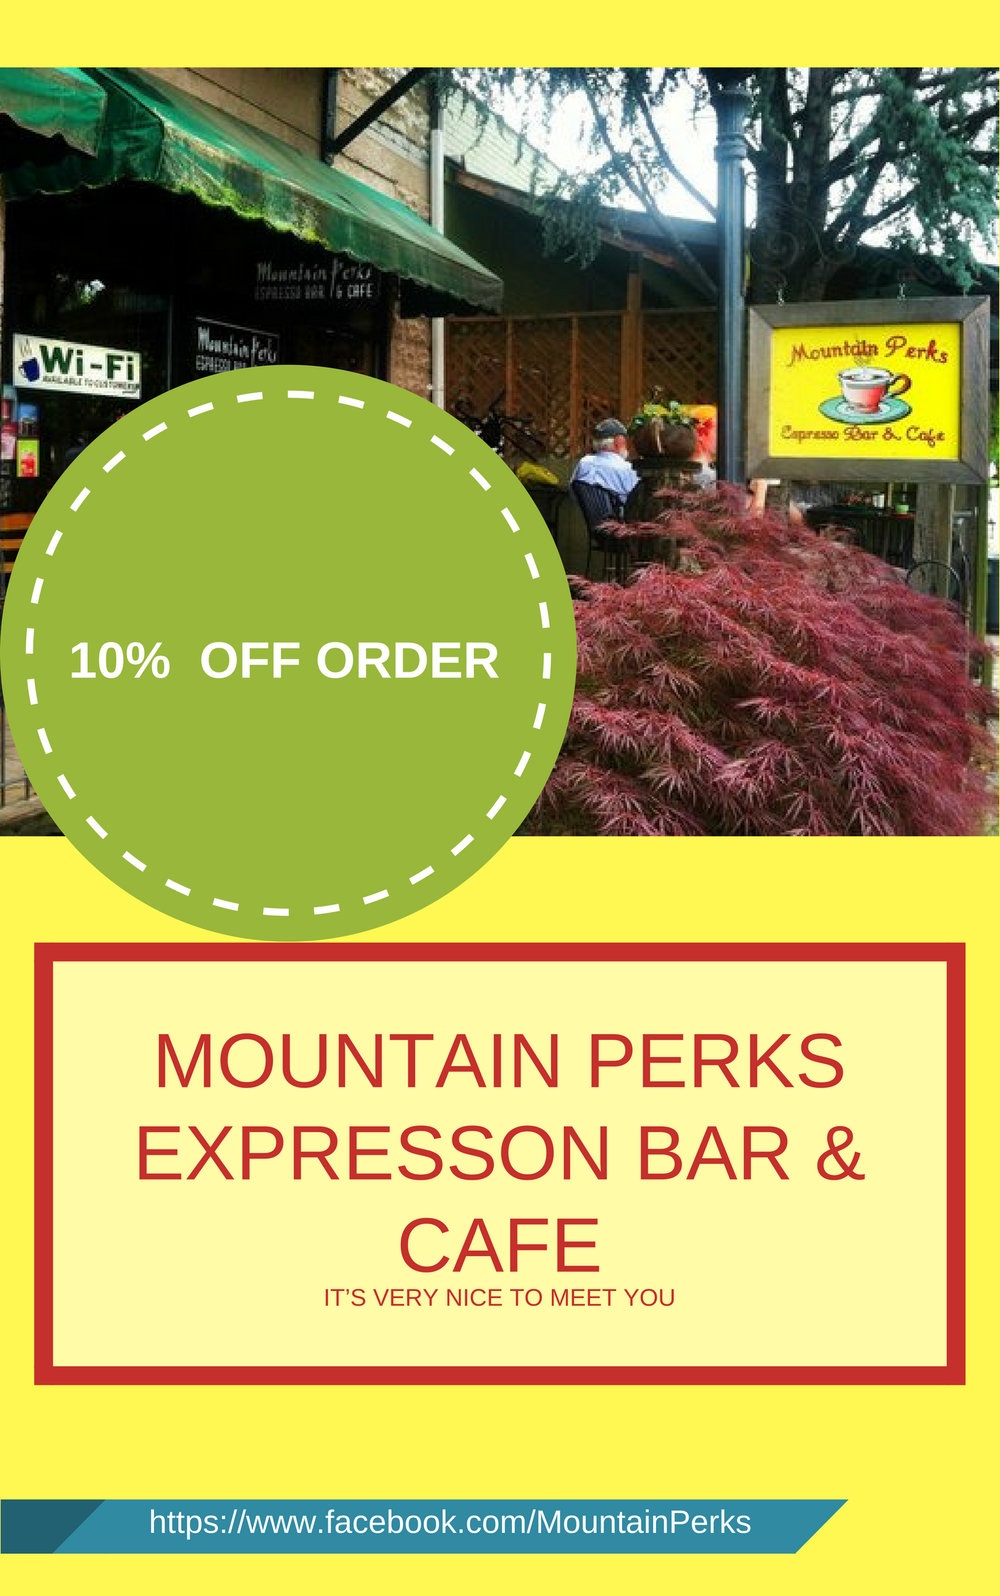 Mountain Perks 10% OFF Order